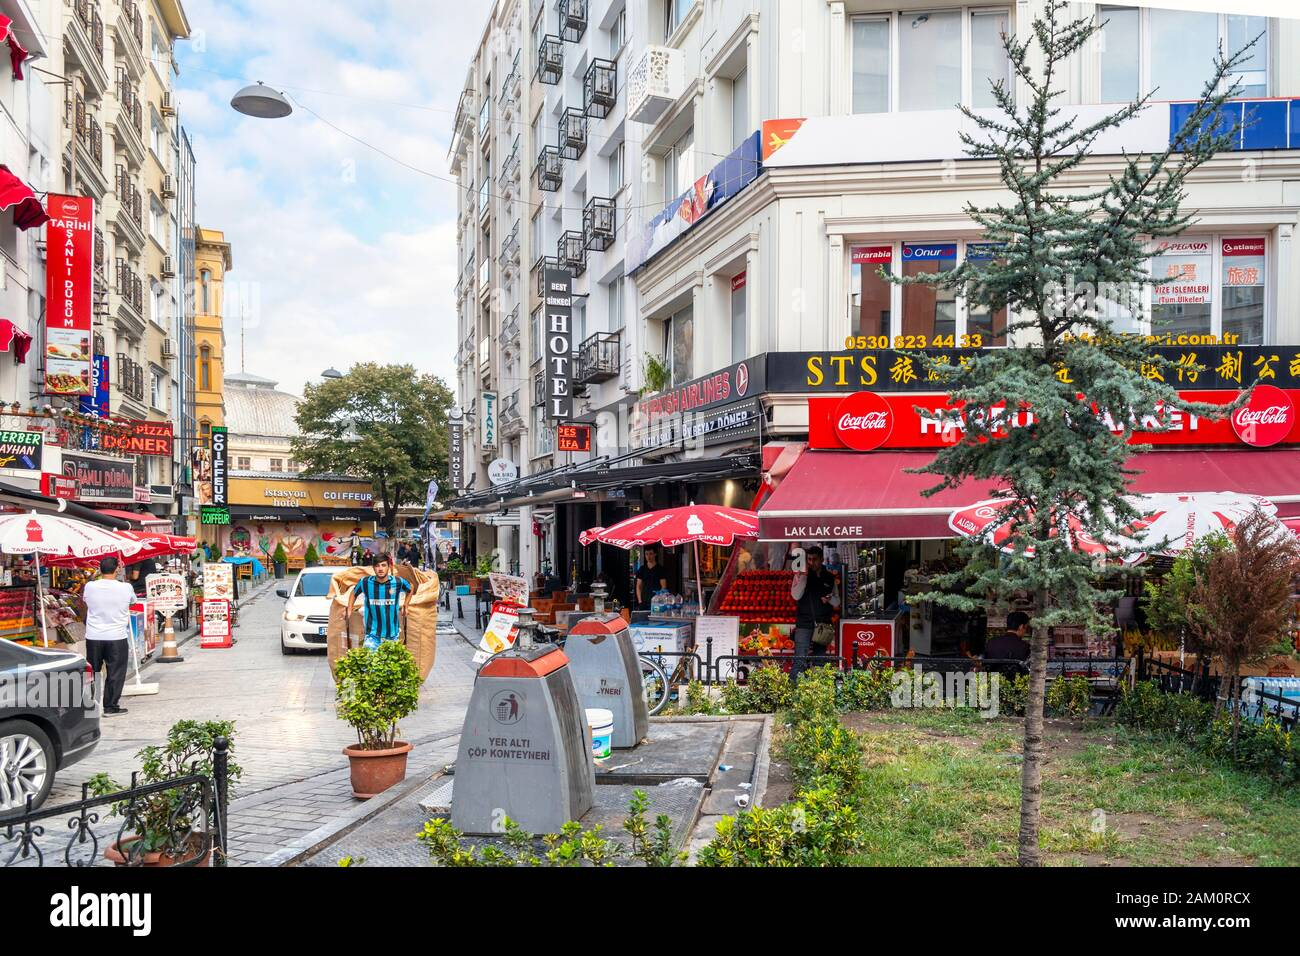 A busy, colorful street corner with cafes, shops and hotels, in the touristic Sultanahmet district of Istanbul, Turkey. Stock Photo